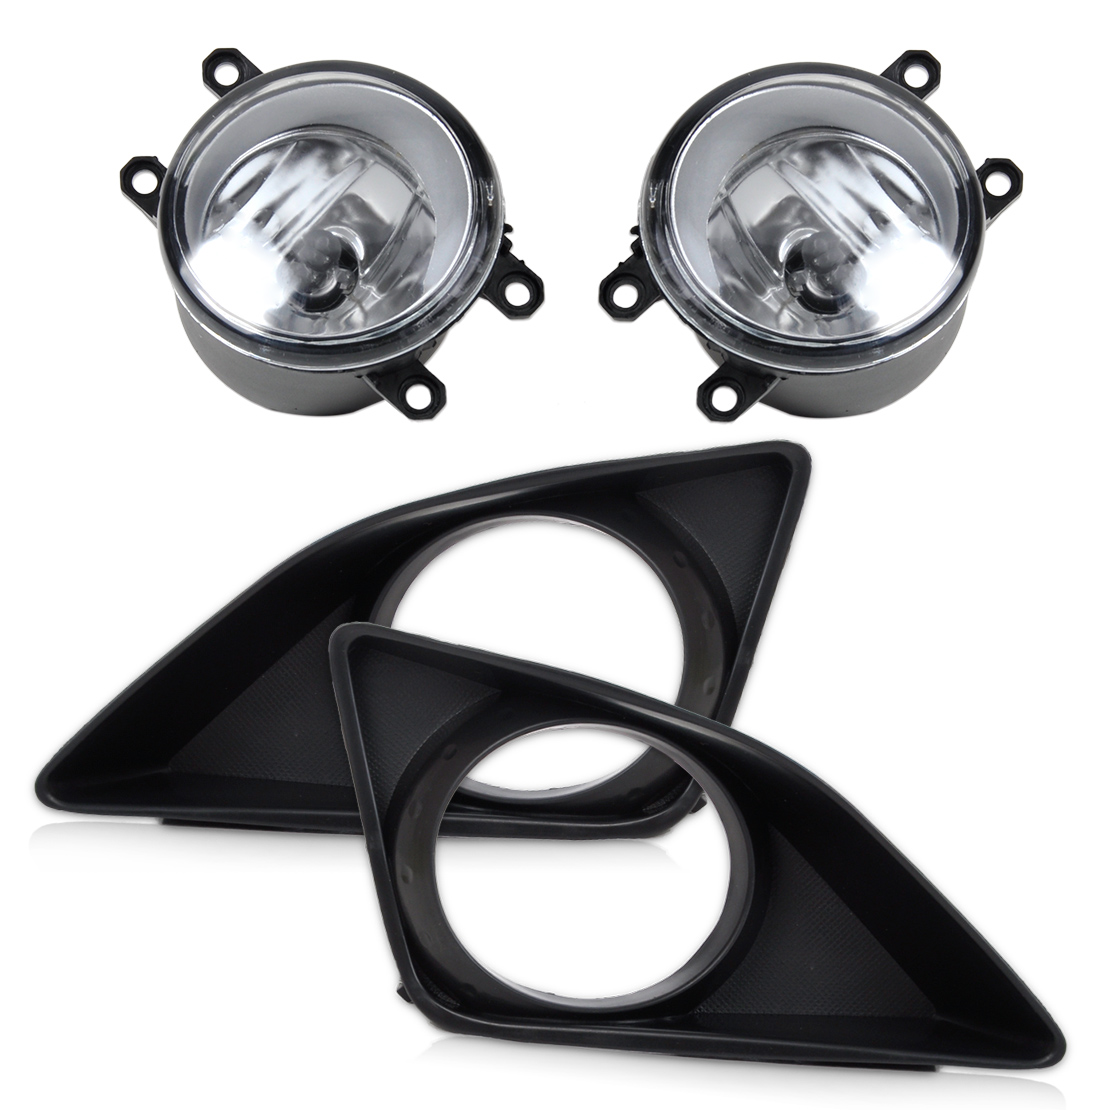 beler 4Pcs Front Right Left Fog Light Lamp + Grille Cover Bezel for Toyota Corolla 2007 2008 2009 2010 1set front chrome housing clear lens driving bumper fog light lamp grille cover switch line kit for 2007 2009 toyota camry